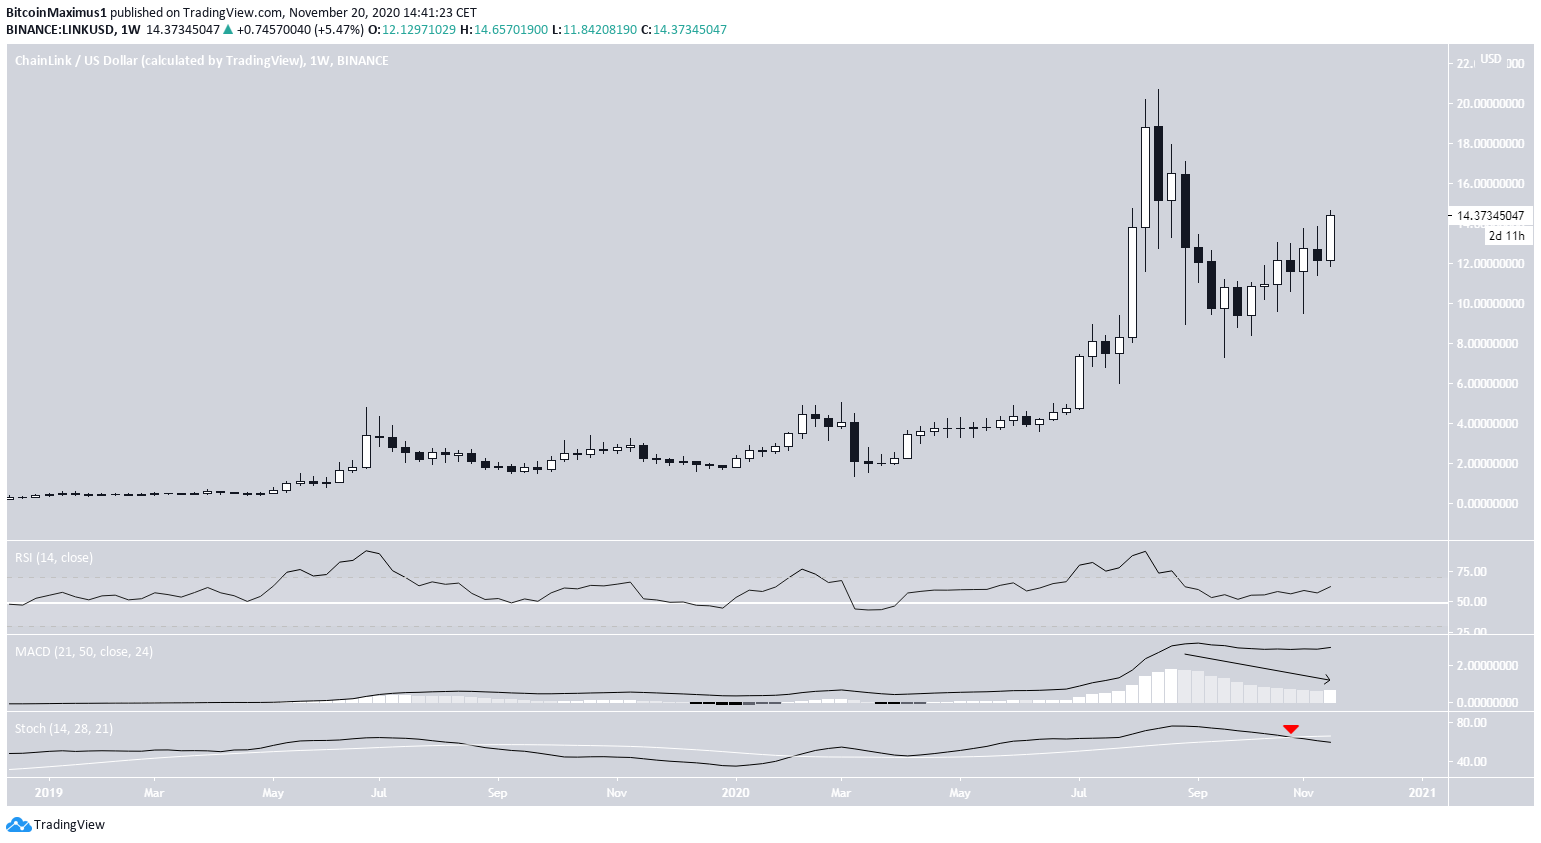 LINK Weekly Movement